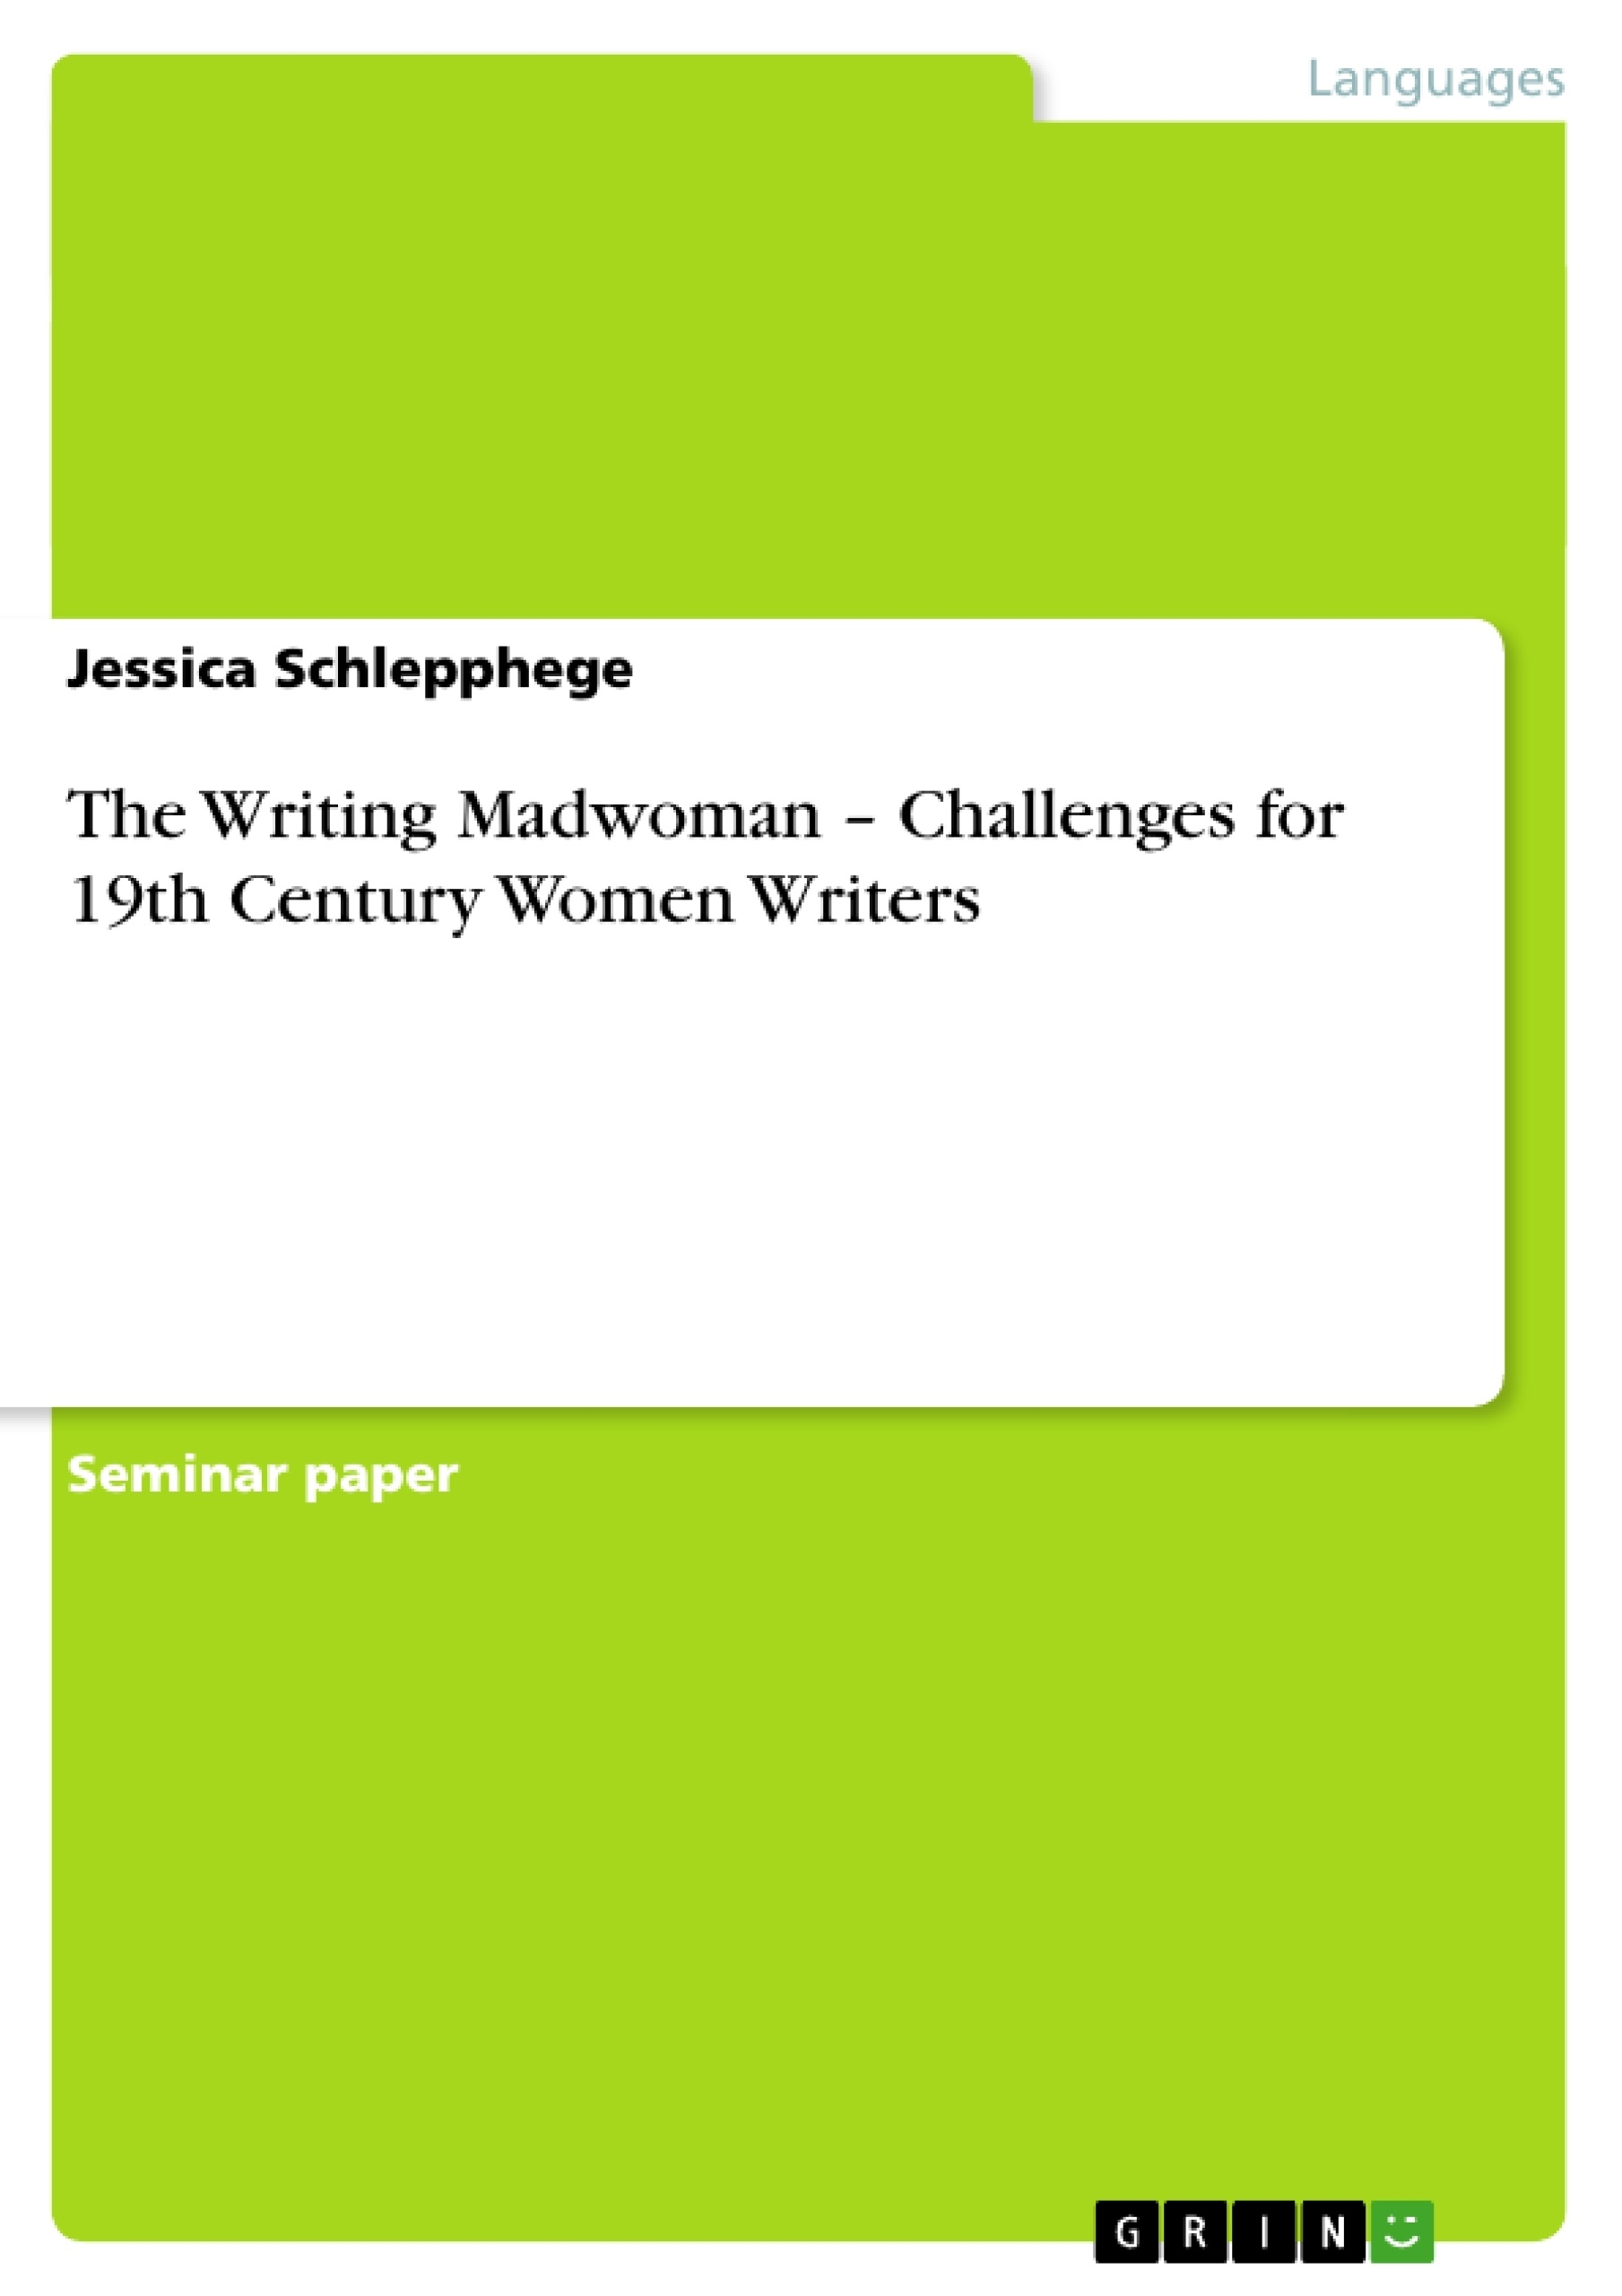 Title: The Writing Madwoman  – Challenges for 19th Century Women Writers